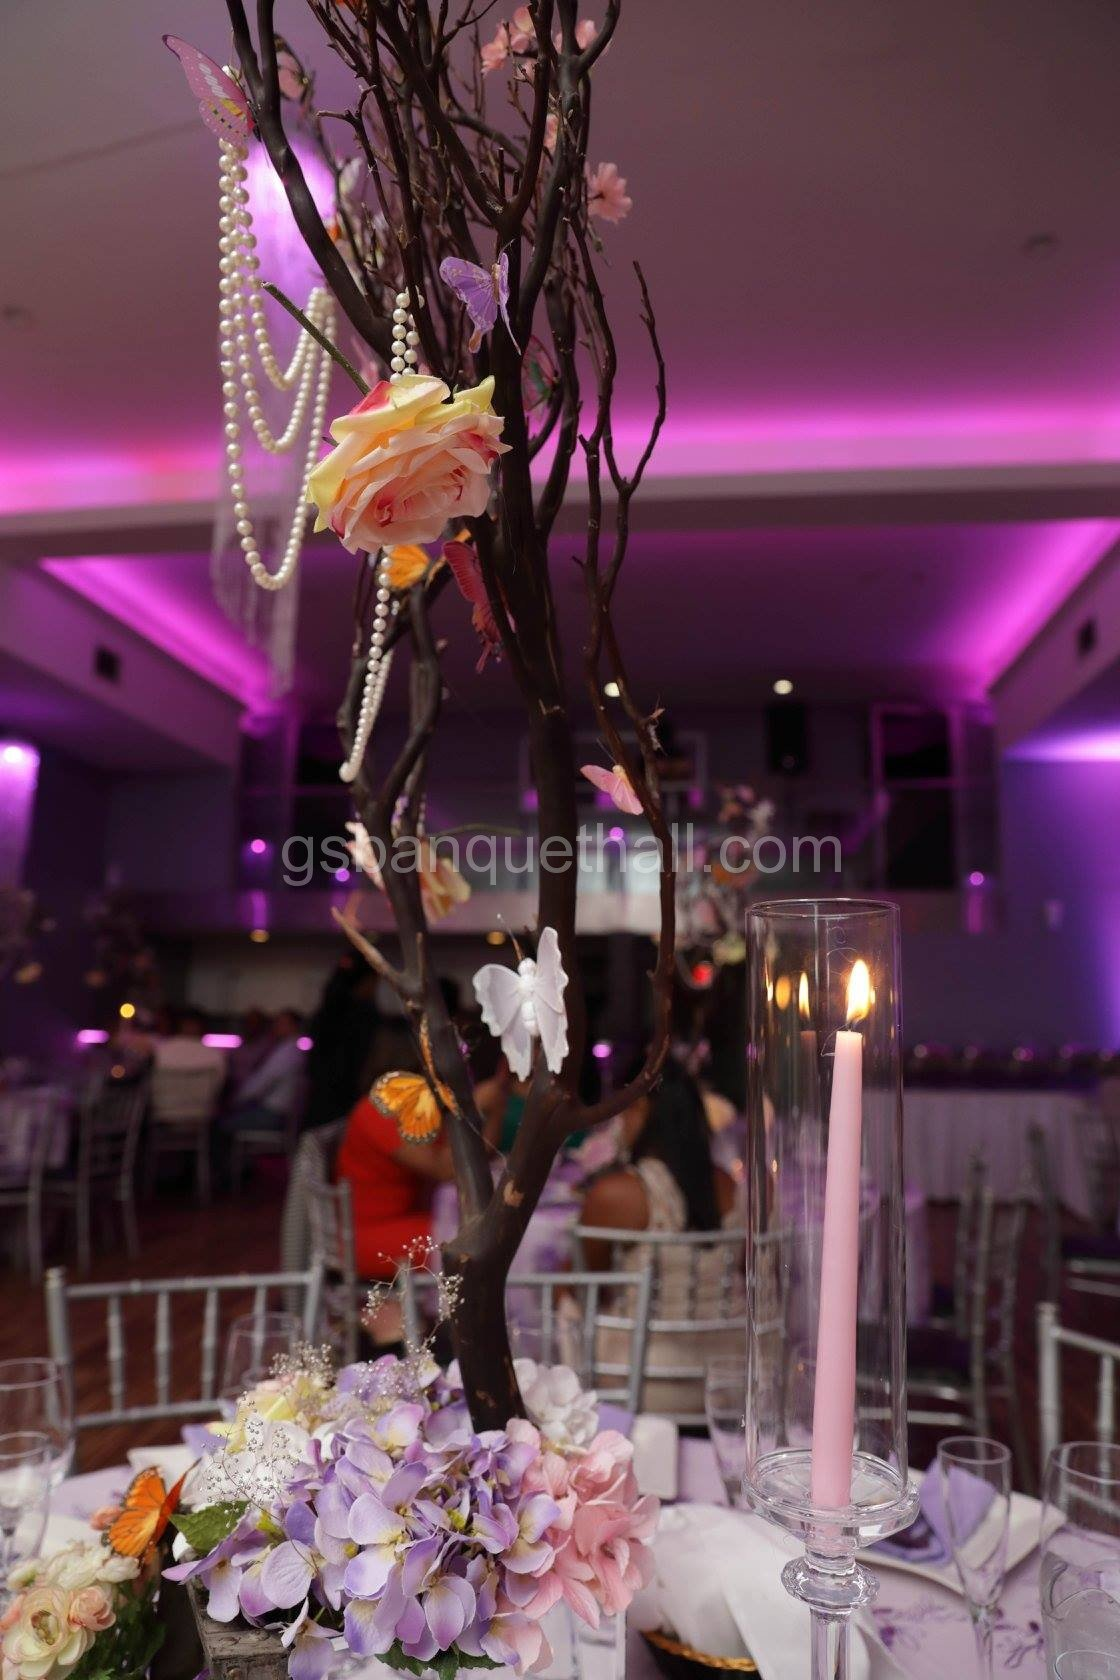 Flowers and butterflies butterflies wedding decoration shop for hanging birthday decorations birthday banners table decorations confetti and more wedding hall banquet hall party decorations junglespirit Image collections